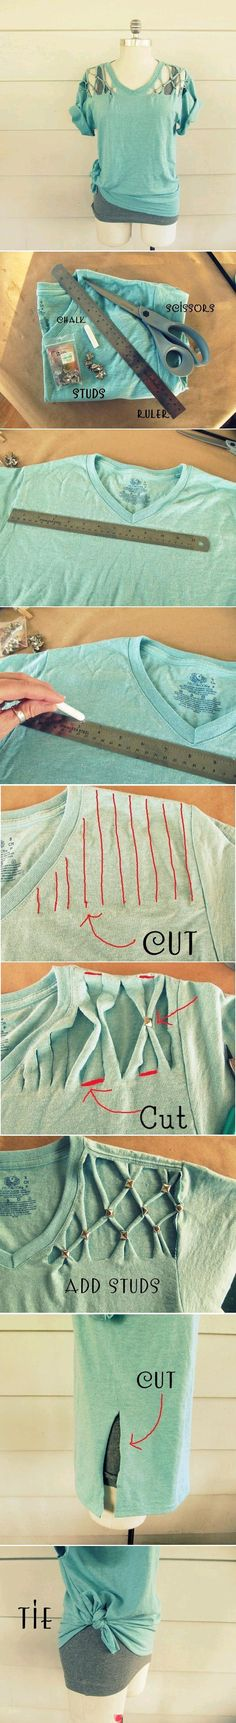 Repiny - Most inspiring pictures and photos! Diy Wedding Projects, Easy Diy Projects, Sewing Crafts, Diy Crafts, Diy Upcycled Tees, Studded Shirt, Fashion Diva Design, Diy Clothes Refashion, Diy Clothing